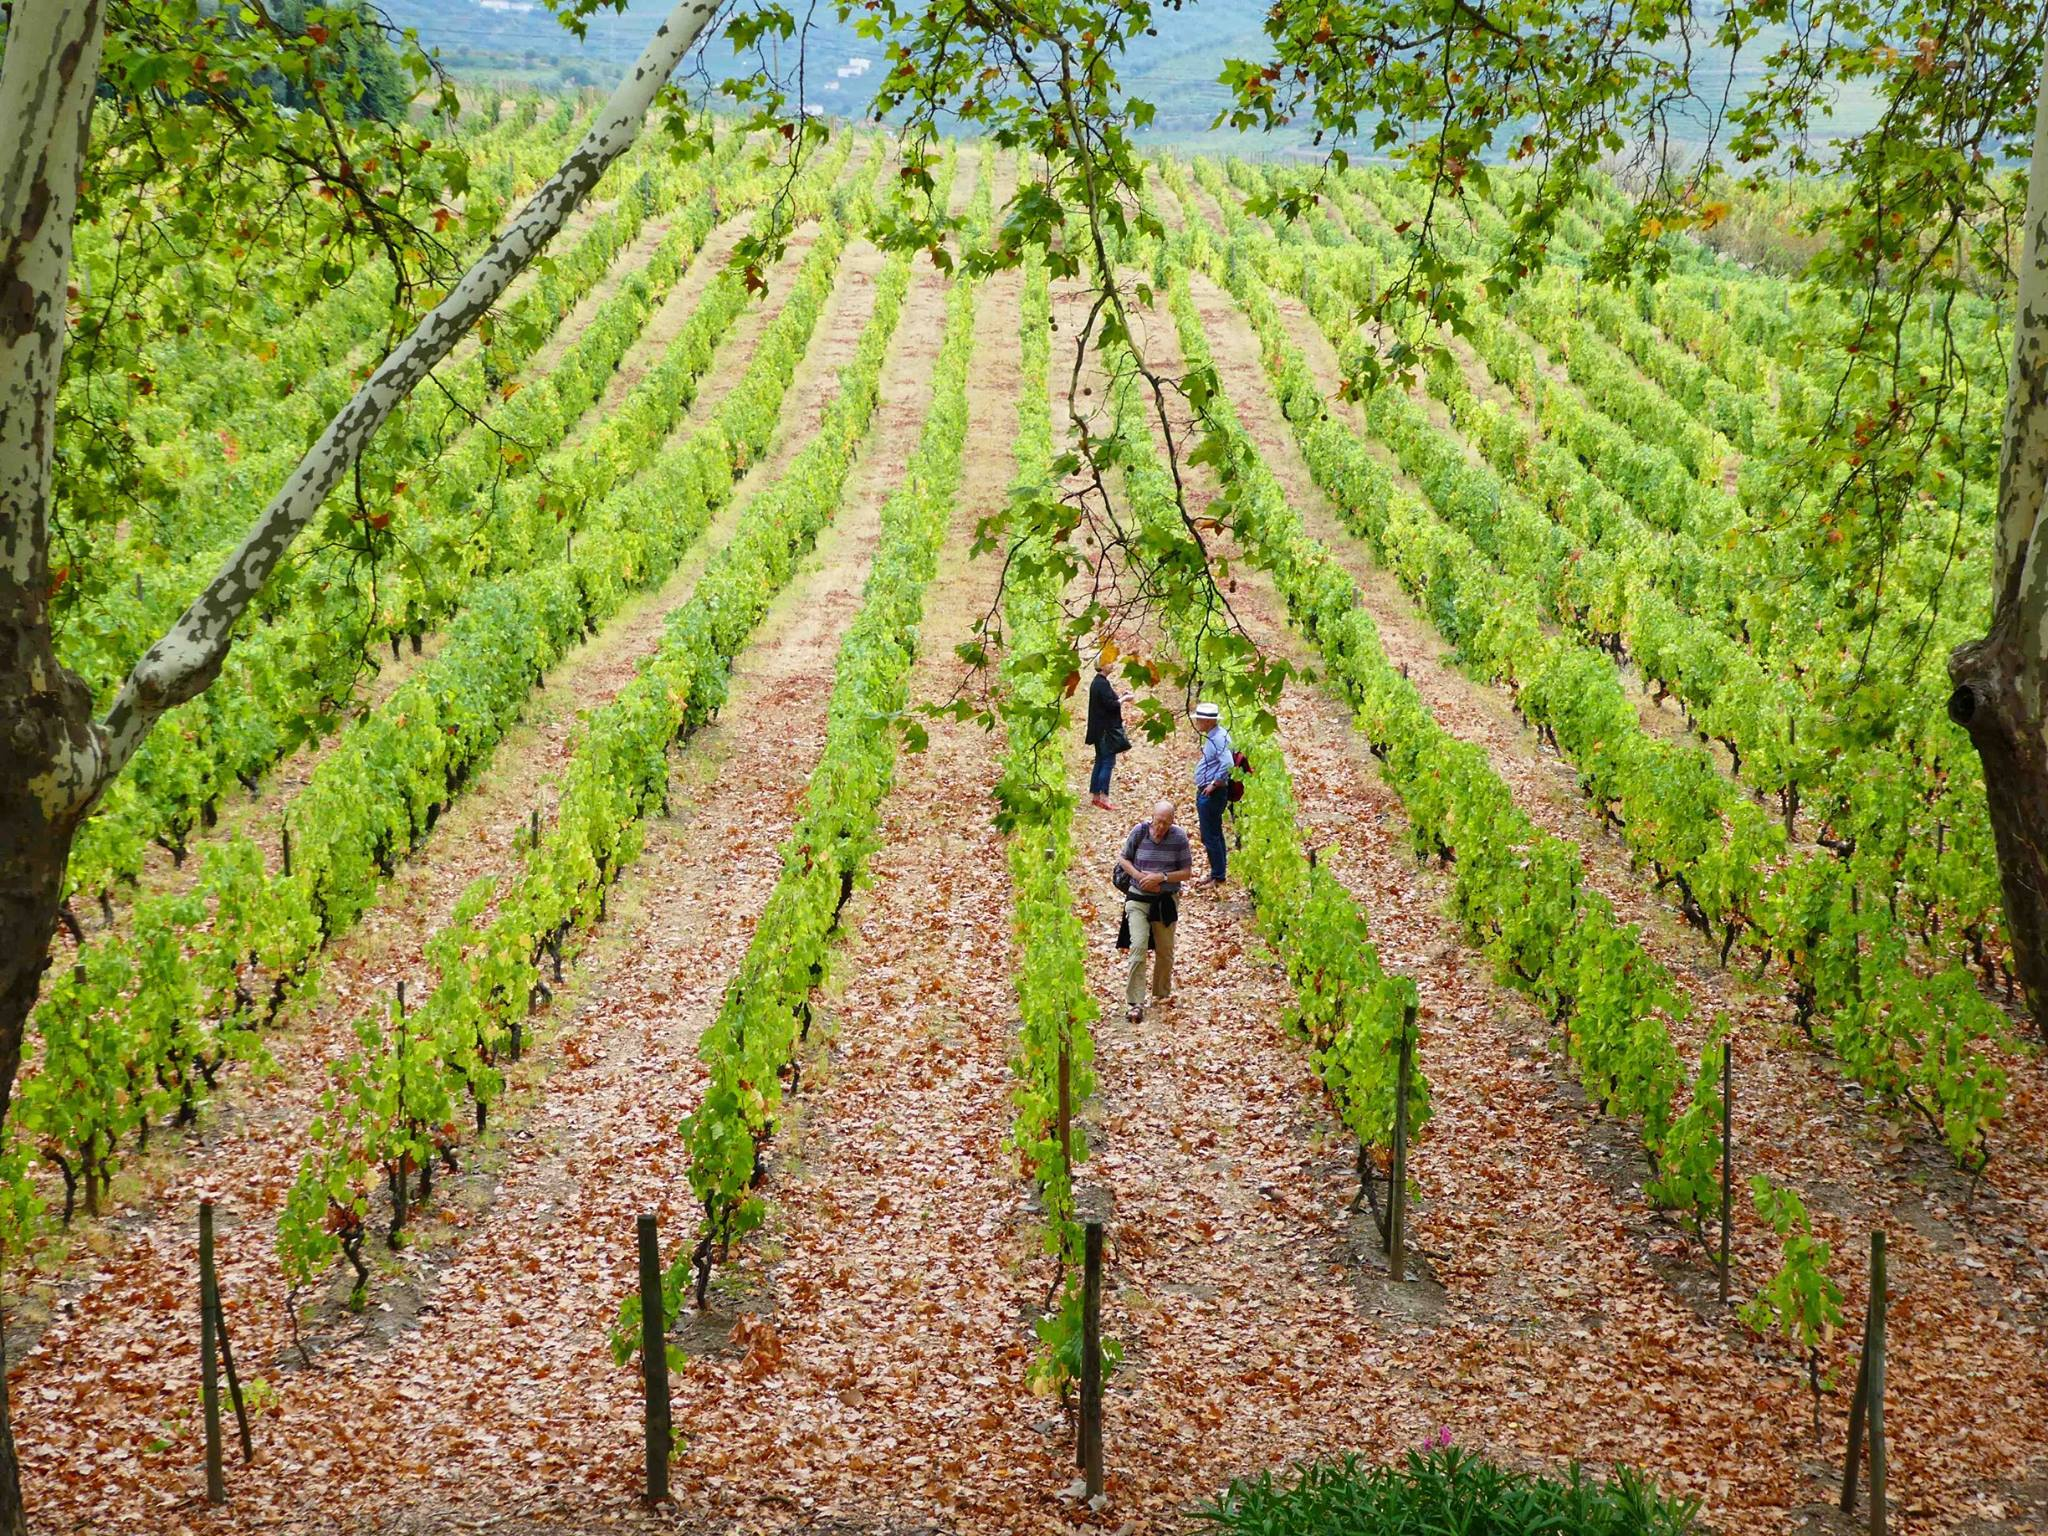 Quinta da Pacheca – Grape Harvest Program